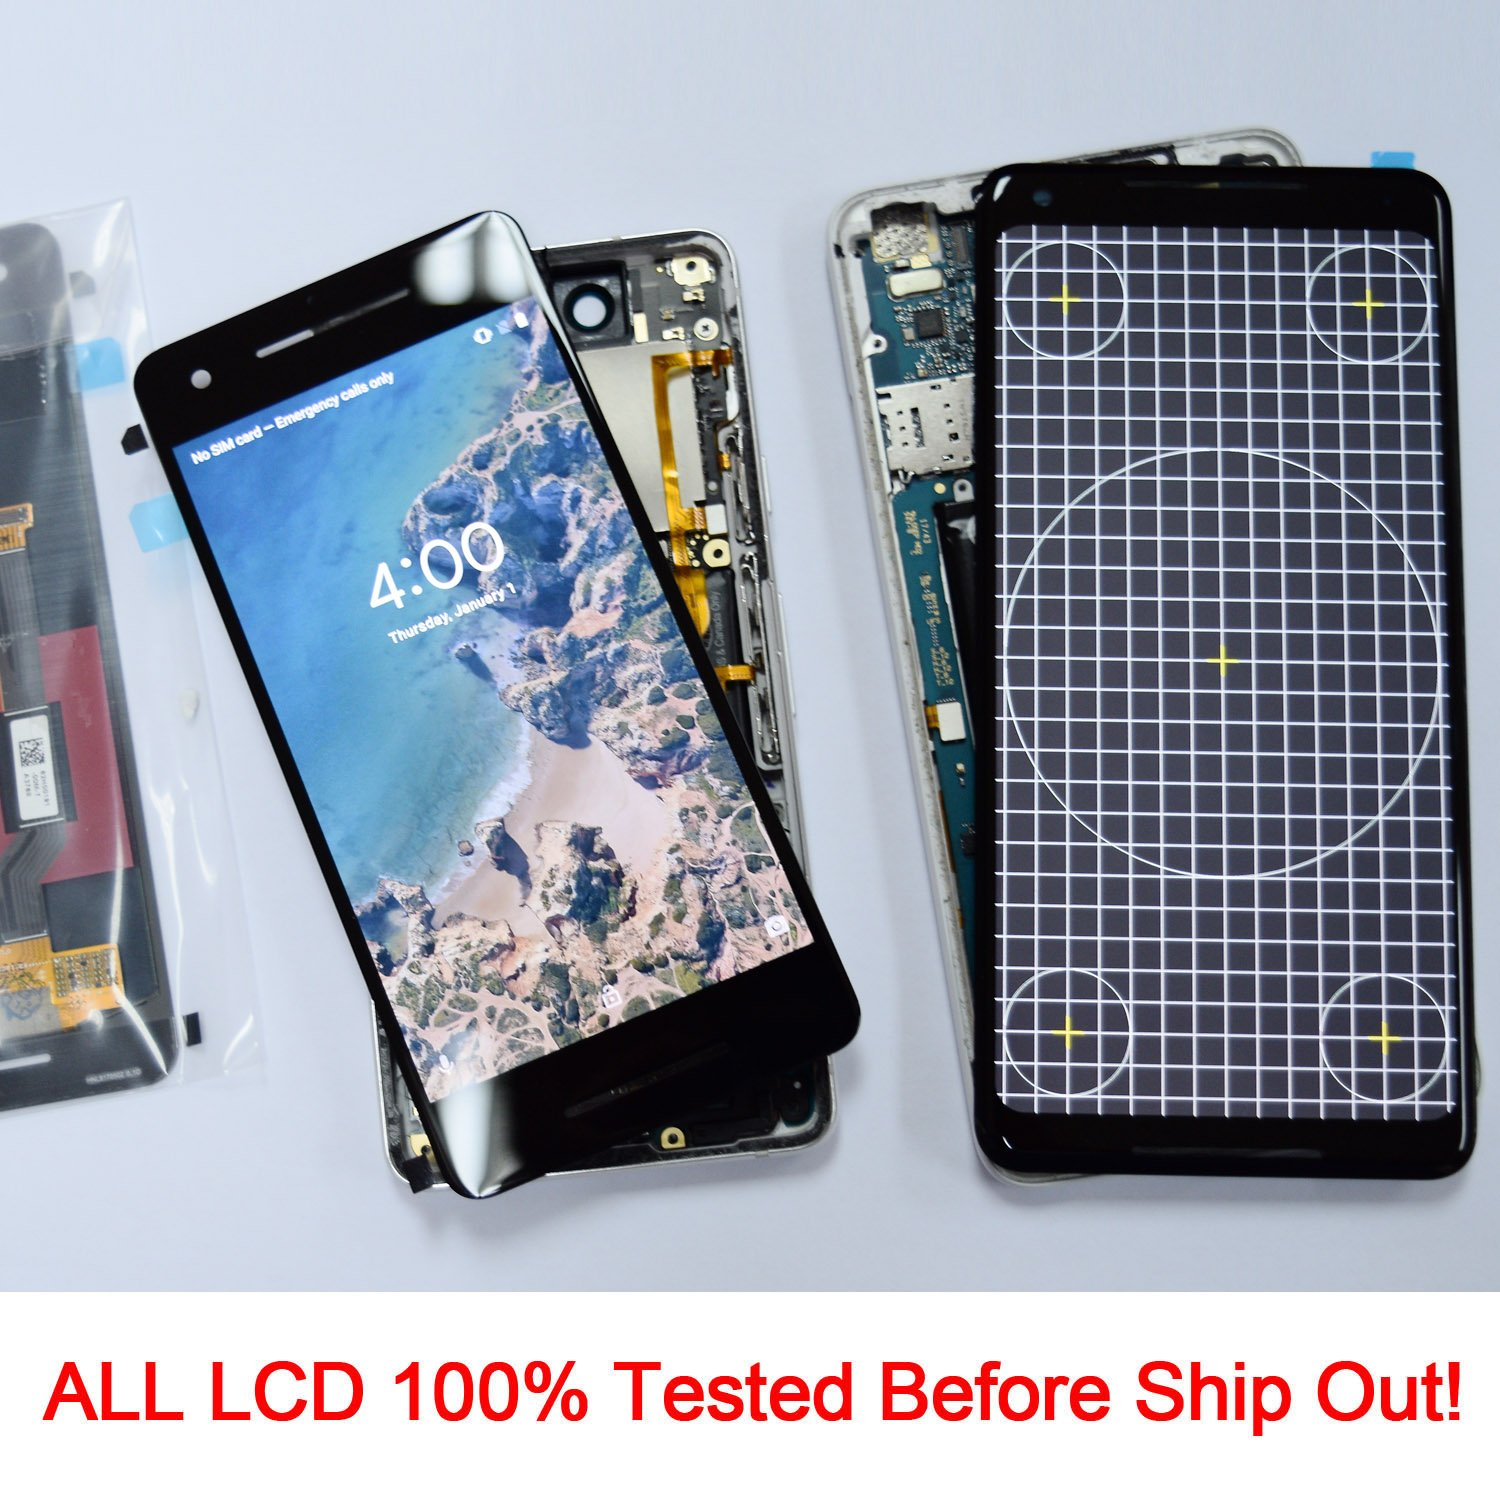 KR-NET AMOLED LCD Display Touch Screen Digitizer Assembly Replacement for  Google Pixel 2, with Adhesive and Tools